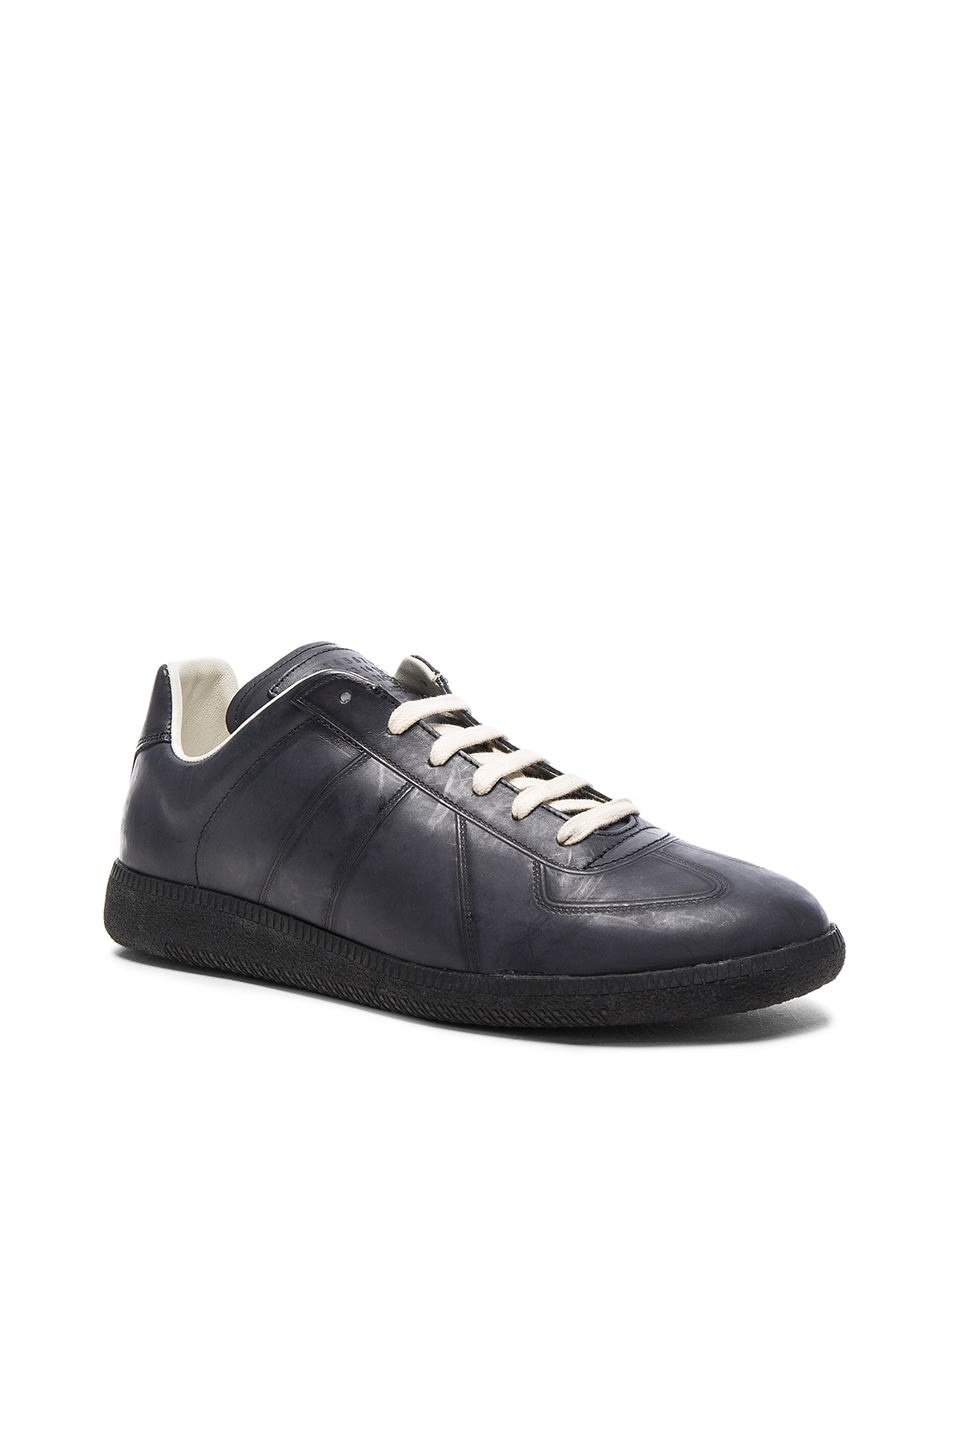 Exclusive 100% Guaranteed Cheap Price Maison Margiela High Frequency High-Top Sneakers Cheap Sale Manchester SSMJsFIn